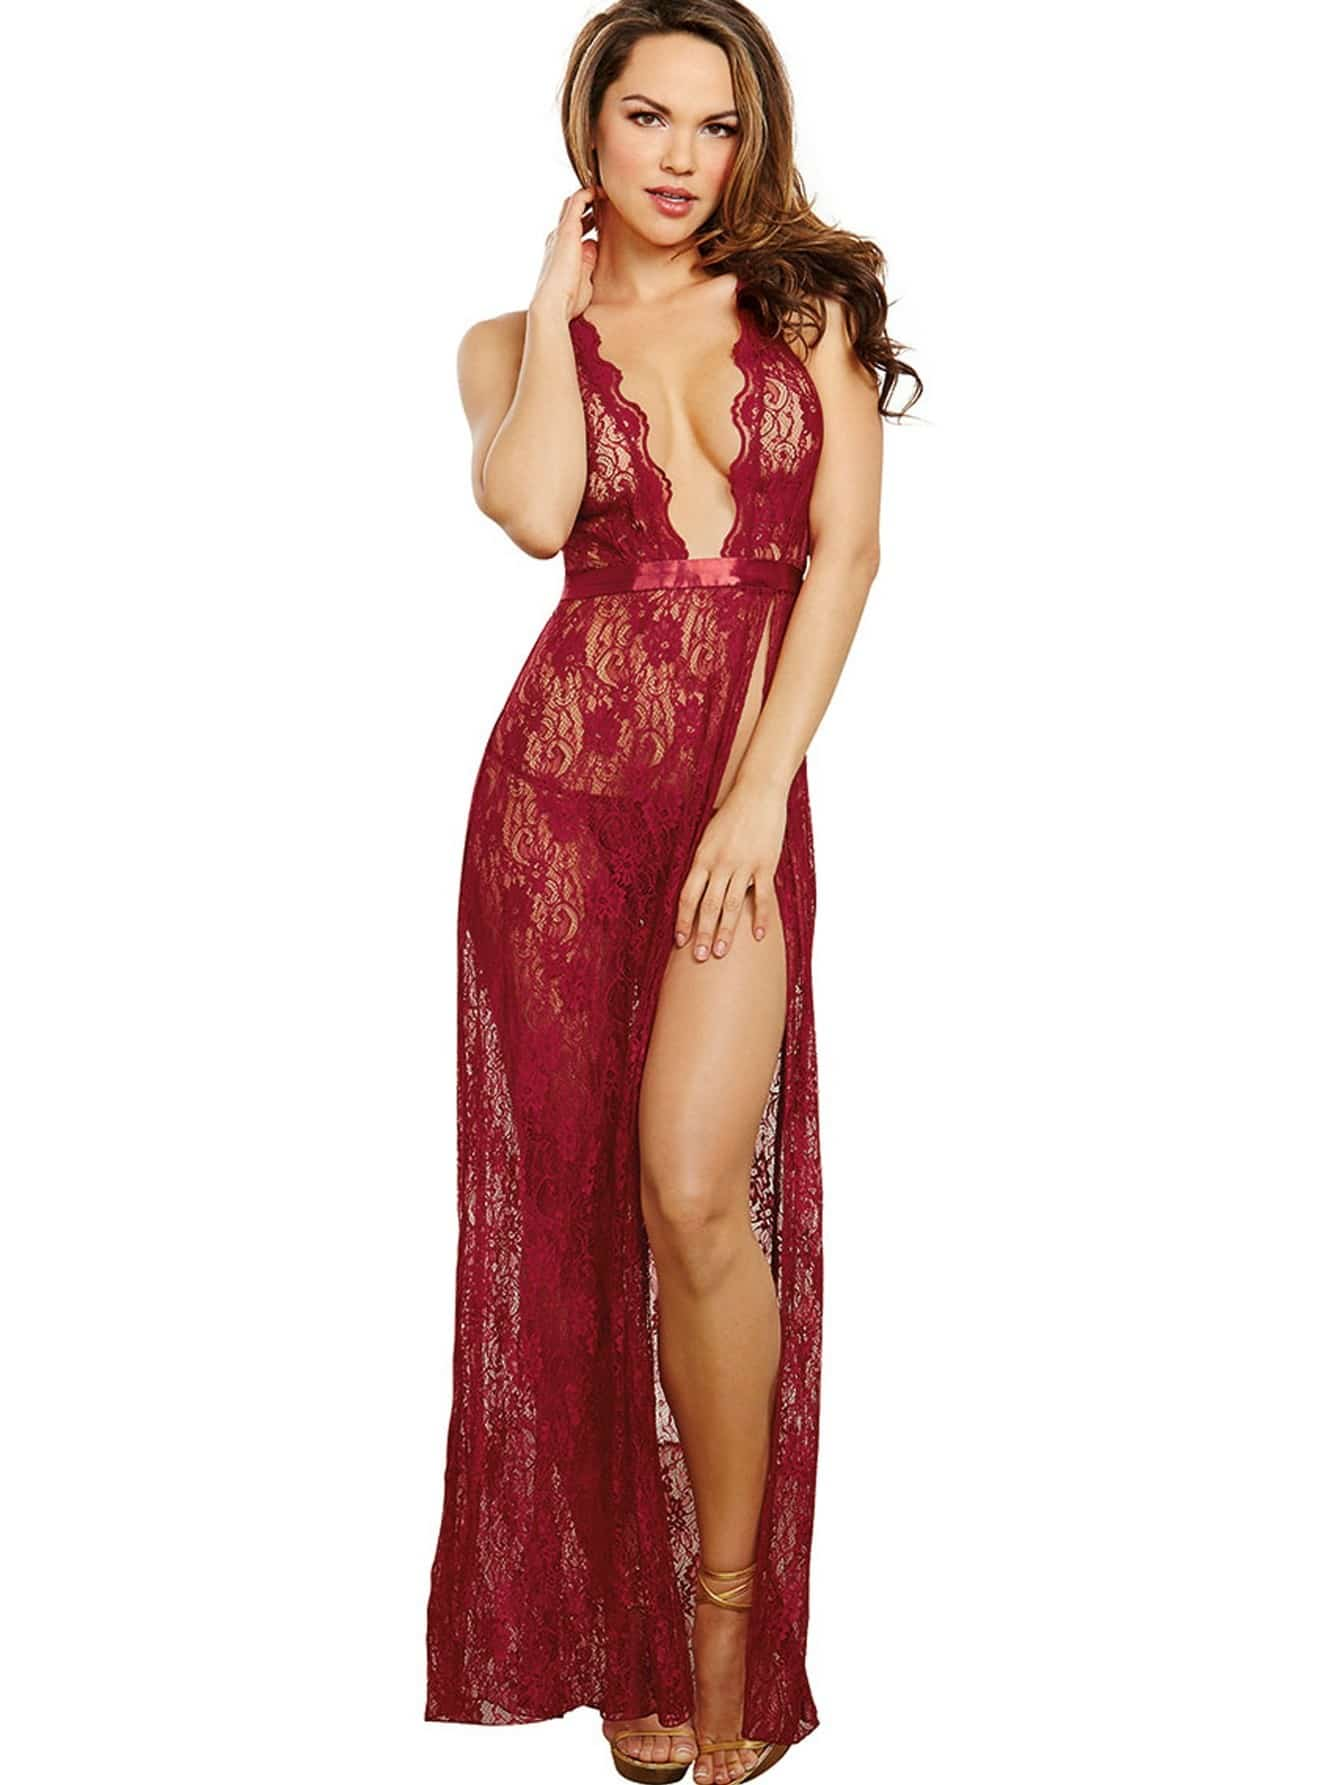 Backless Split Lace Dress With Thong high split lace dress with thong